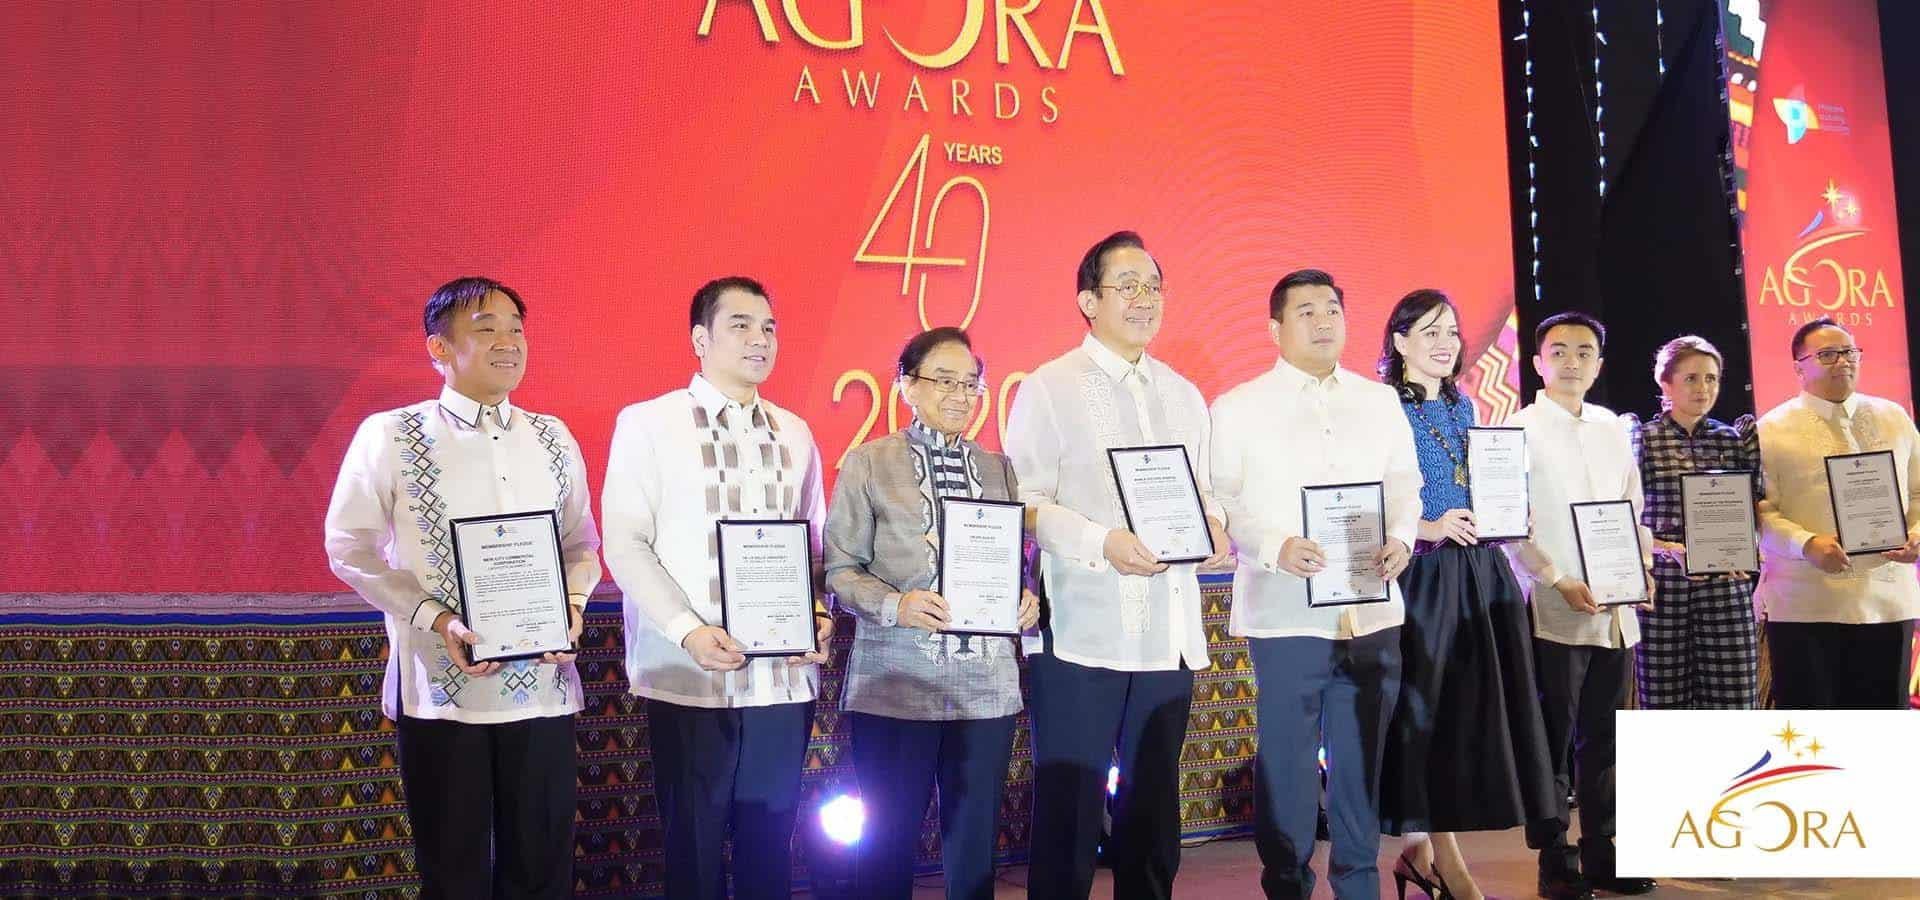 The Agora Awards on its 40th Year